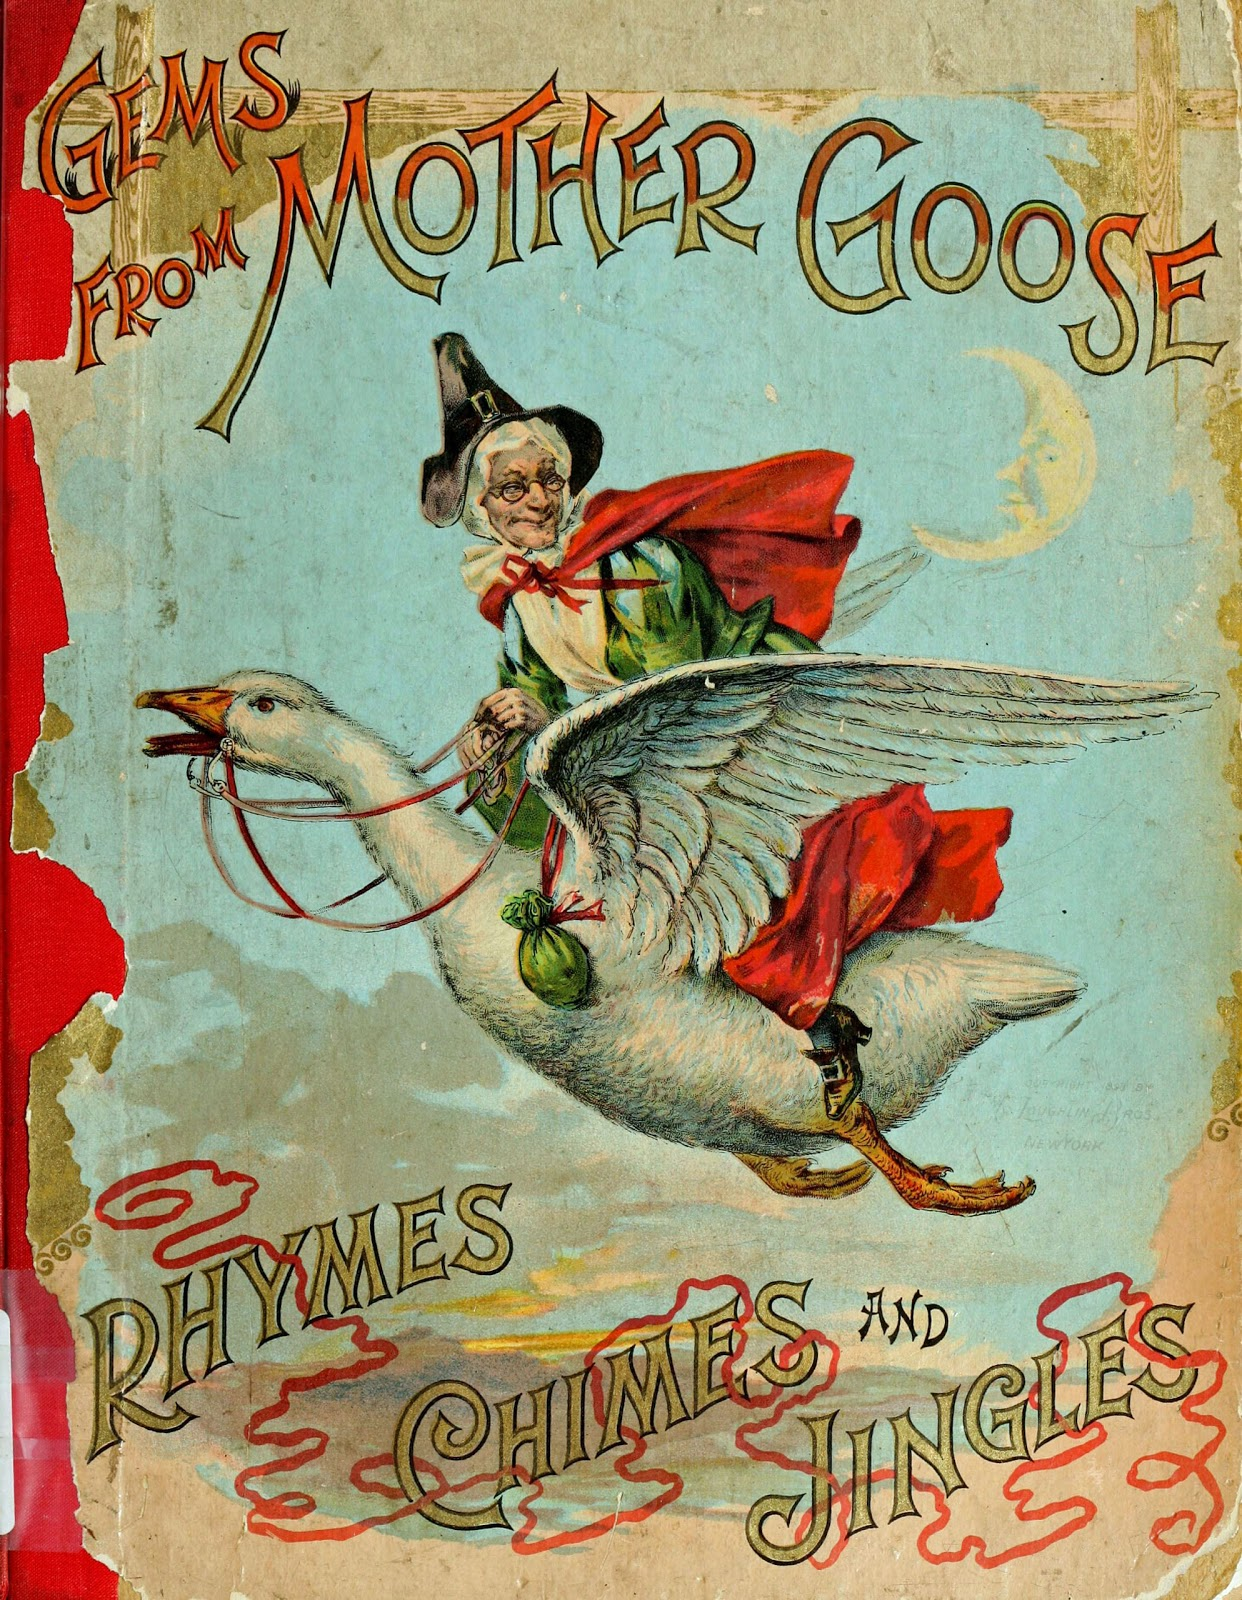 Vintage mother goose clipart png library download 16ab4f3e40d10dd271a6e36f5a075678_-mother-goose-c-1899 ... png library download